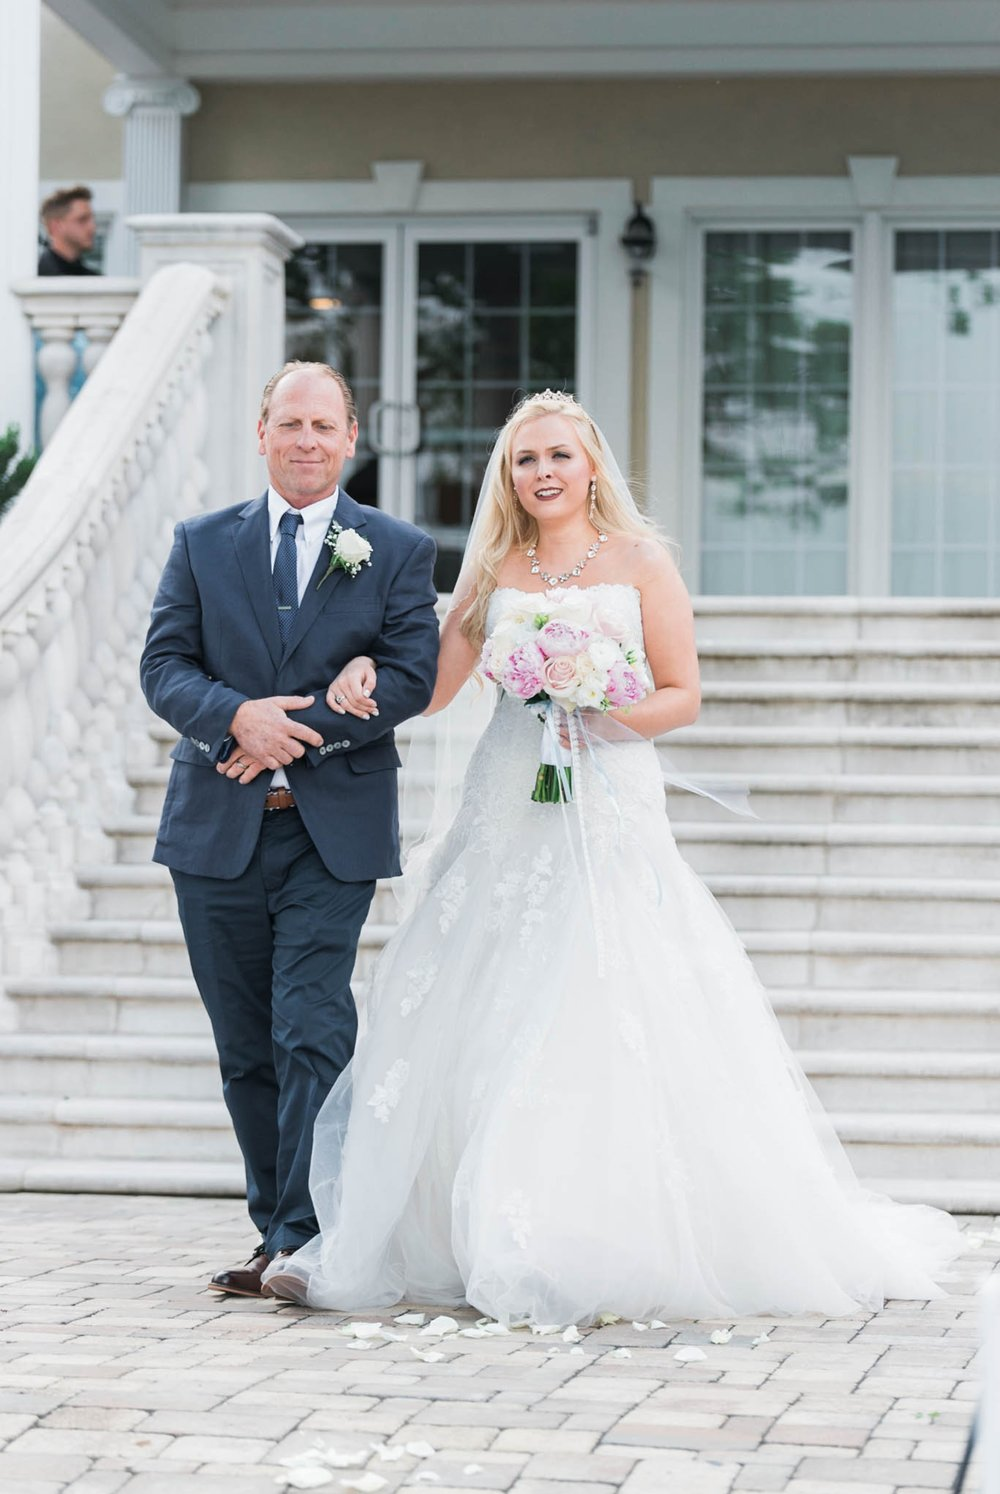 bedfordcolumns_entwinedevents_Lynchburgweddingphotographer_virginiaweddingphotographer_tarahlaunce 36.jpg